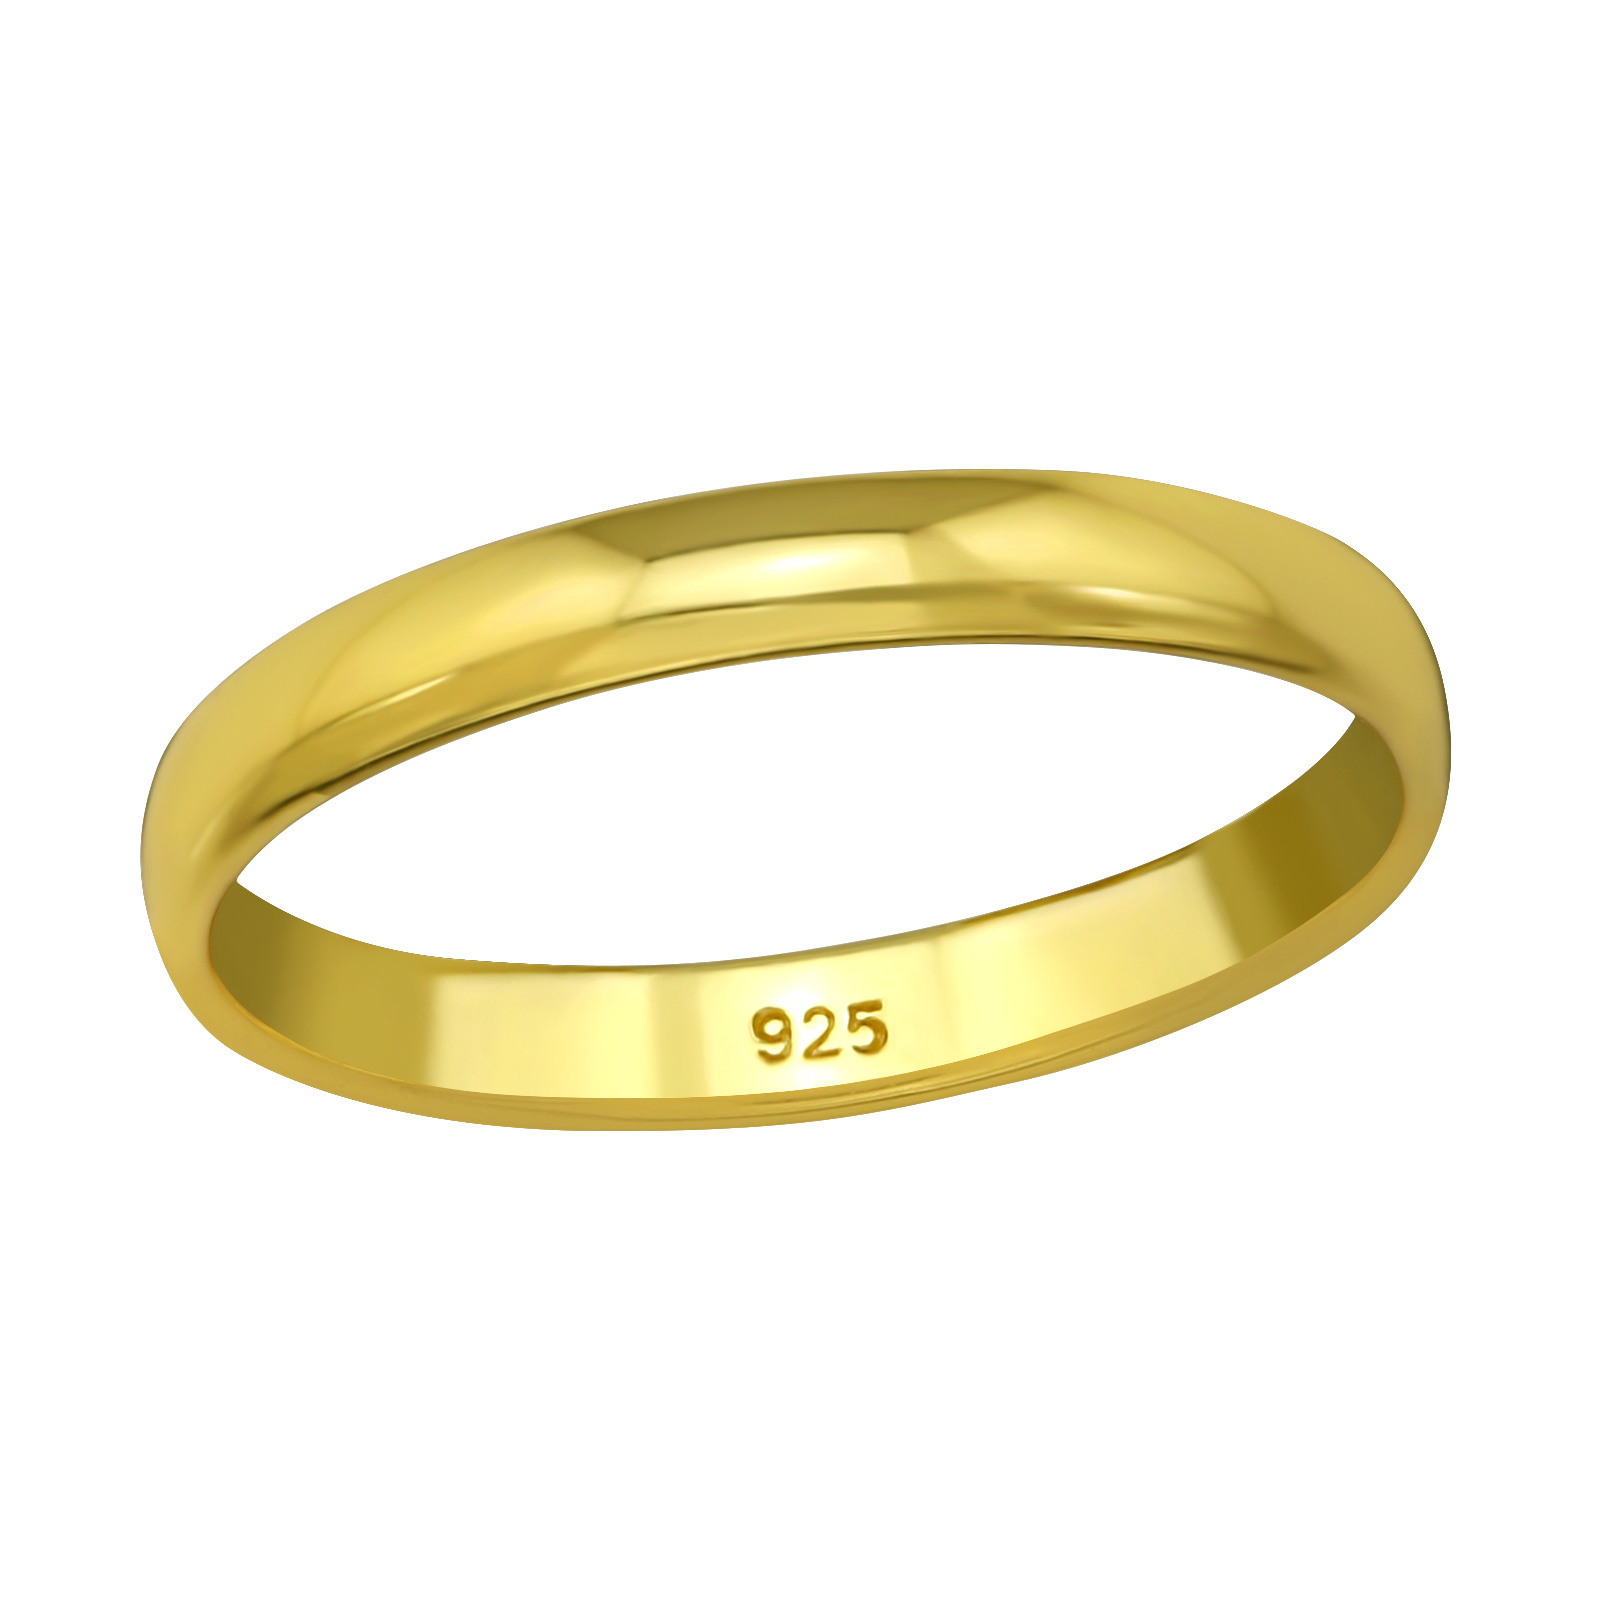 Classic ring made of 925 sterling silver - gold-1